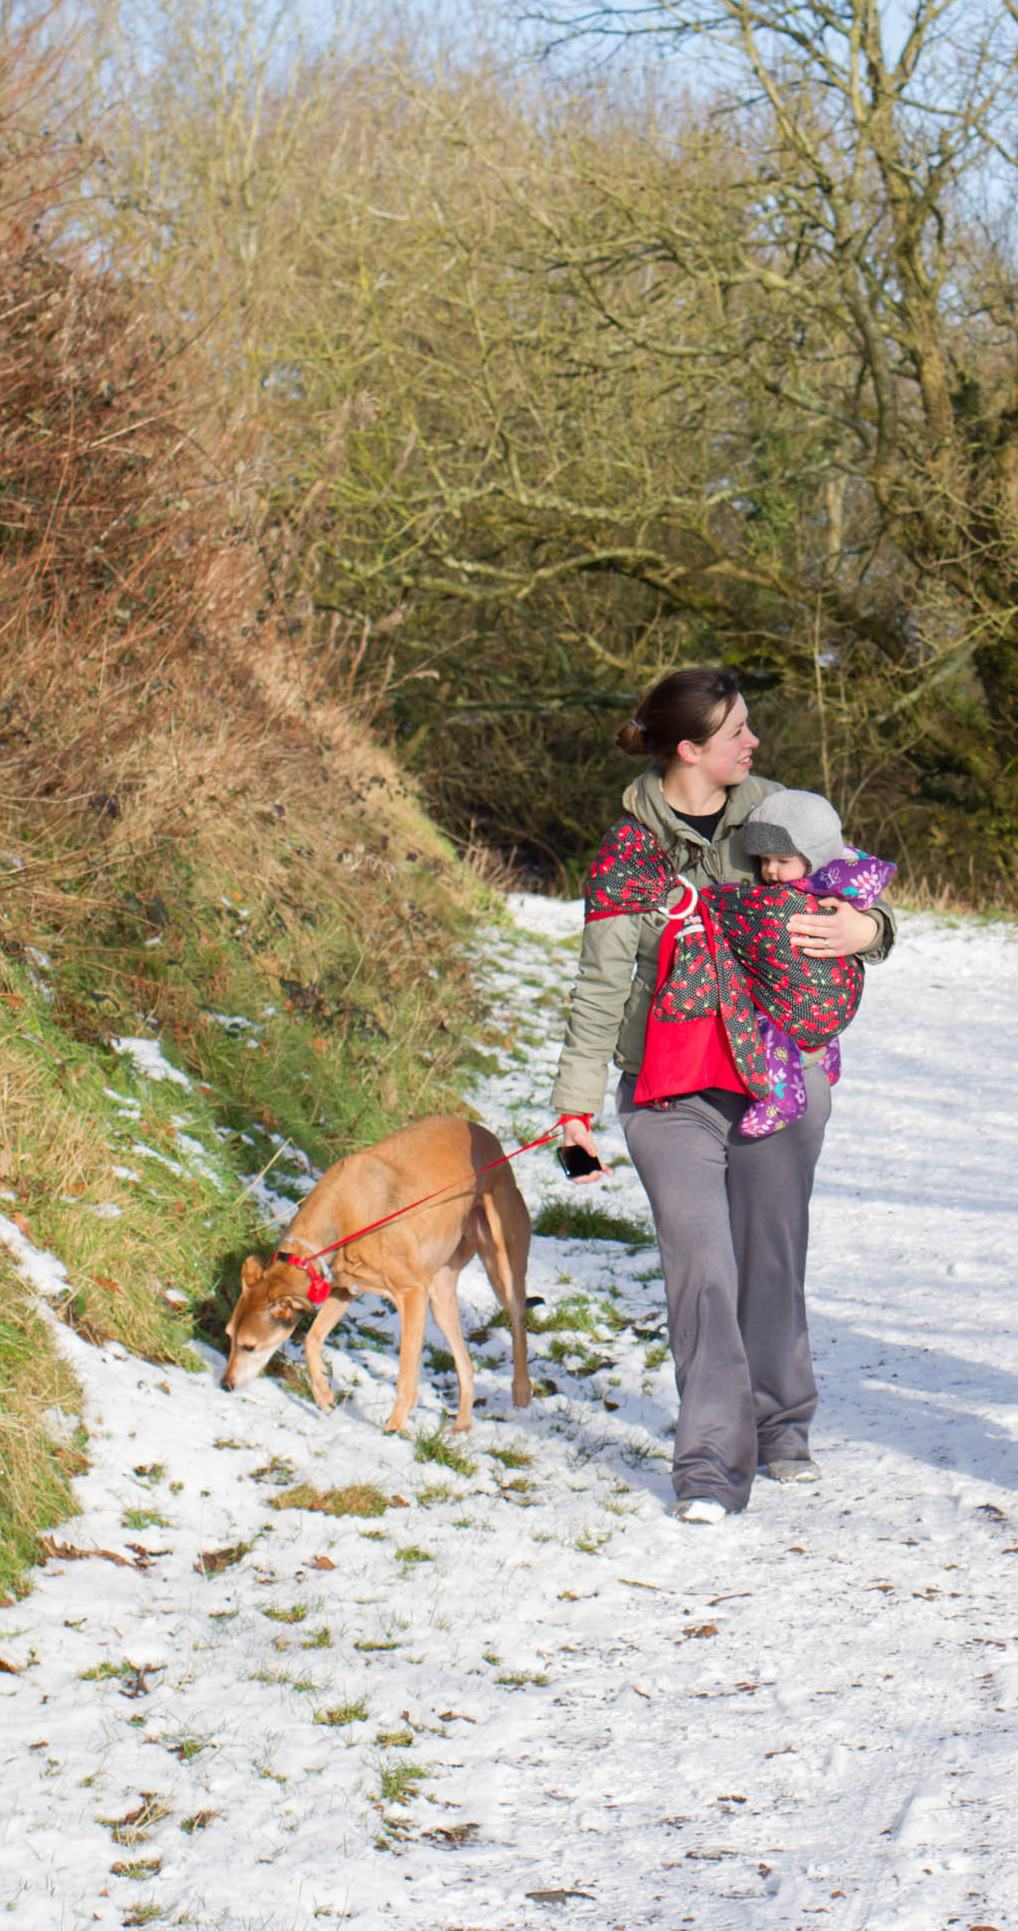 lady walking tan coloured lurcher on a lead, carrying a baby in a sling